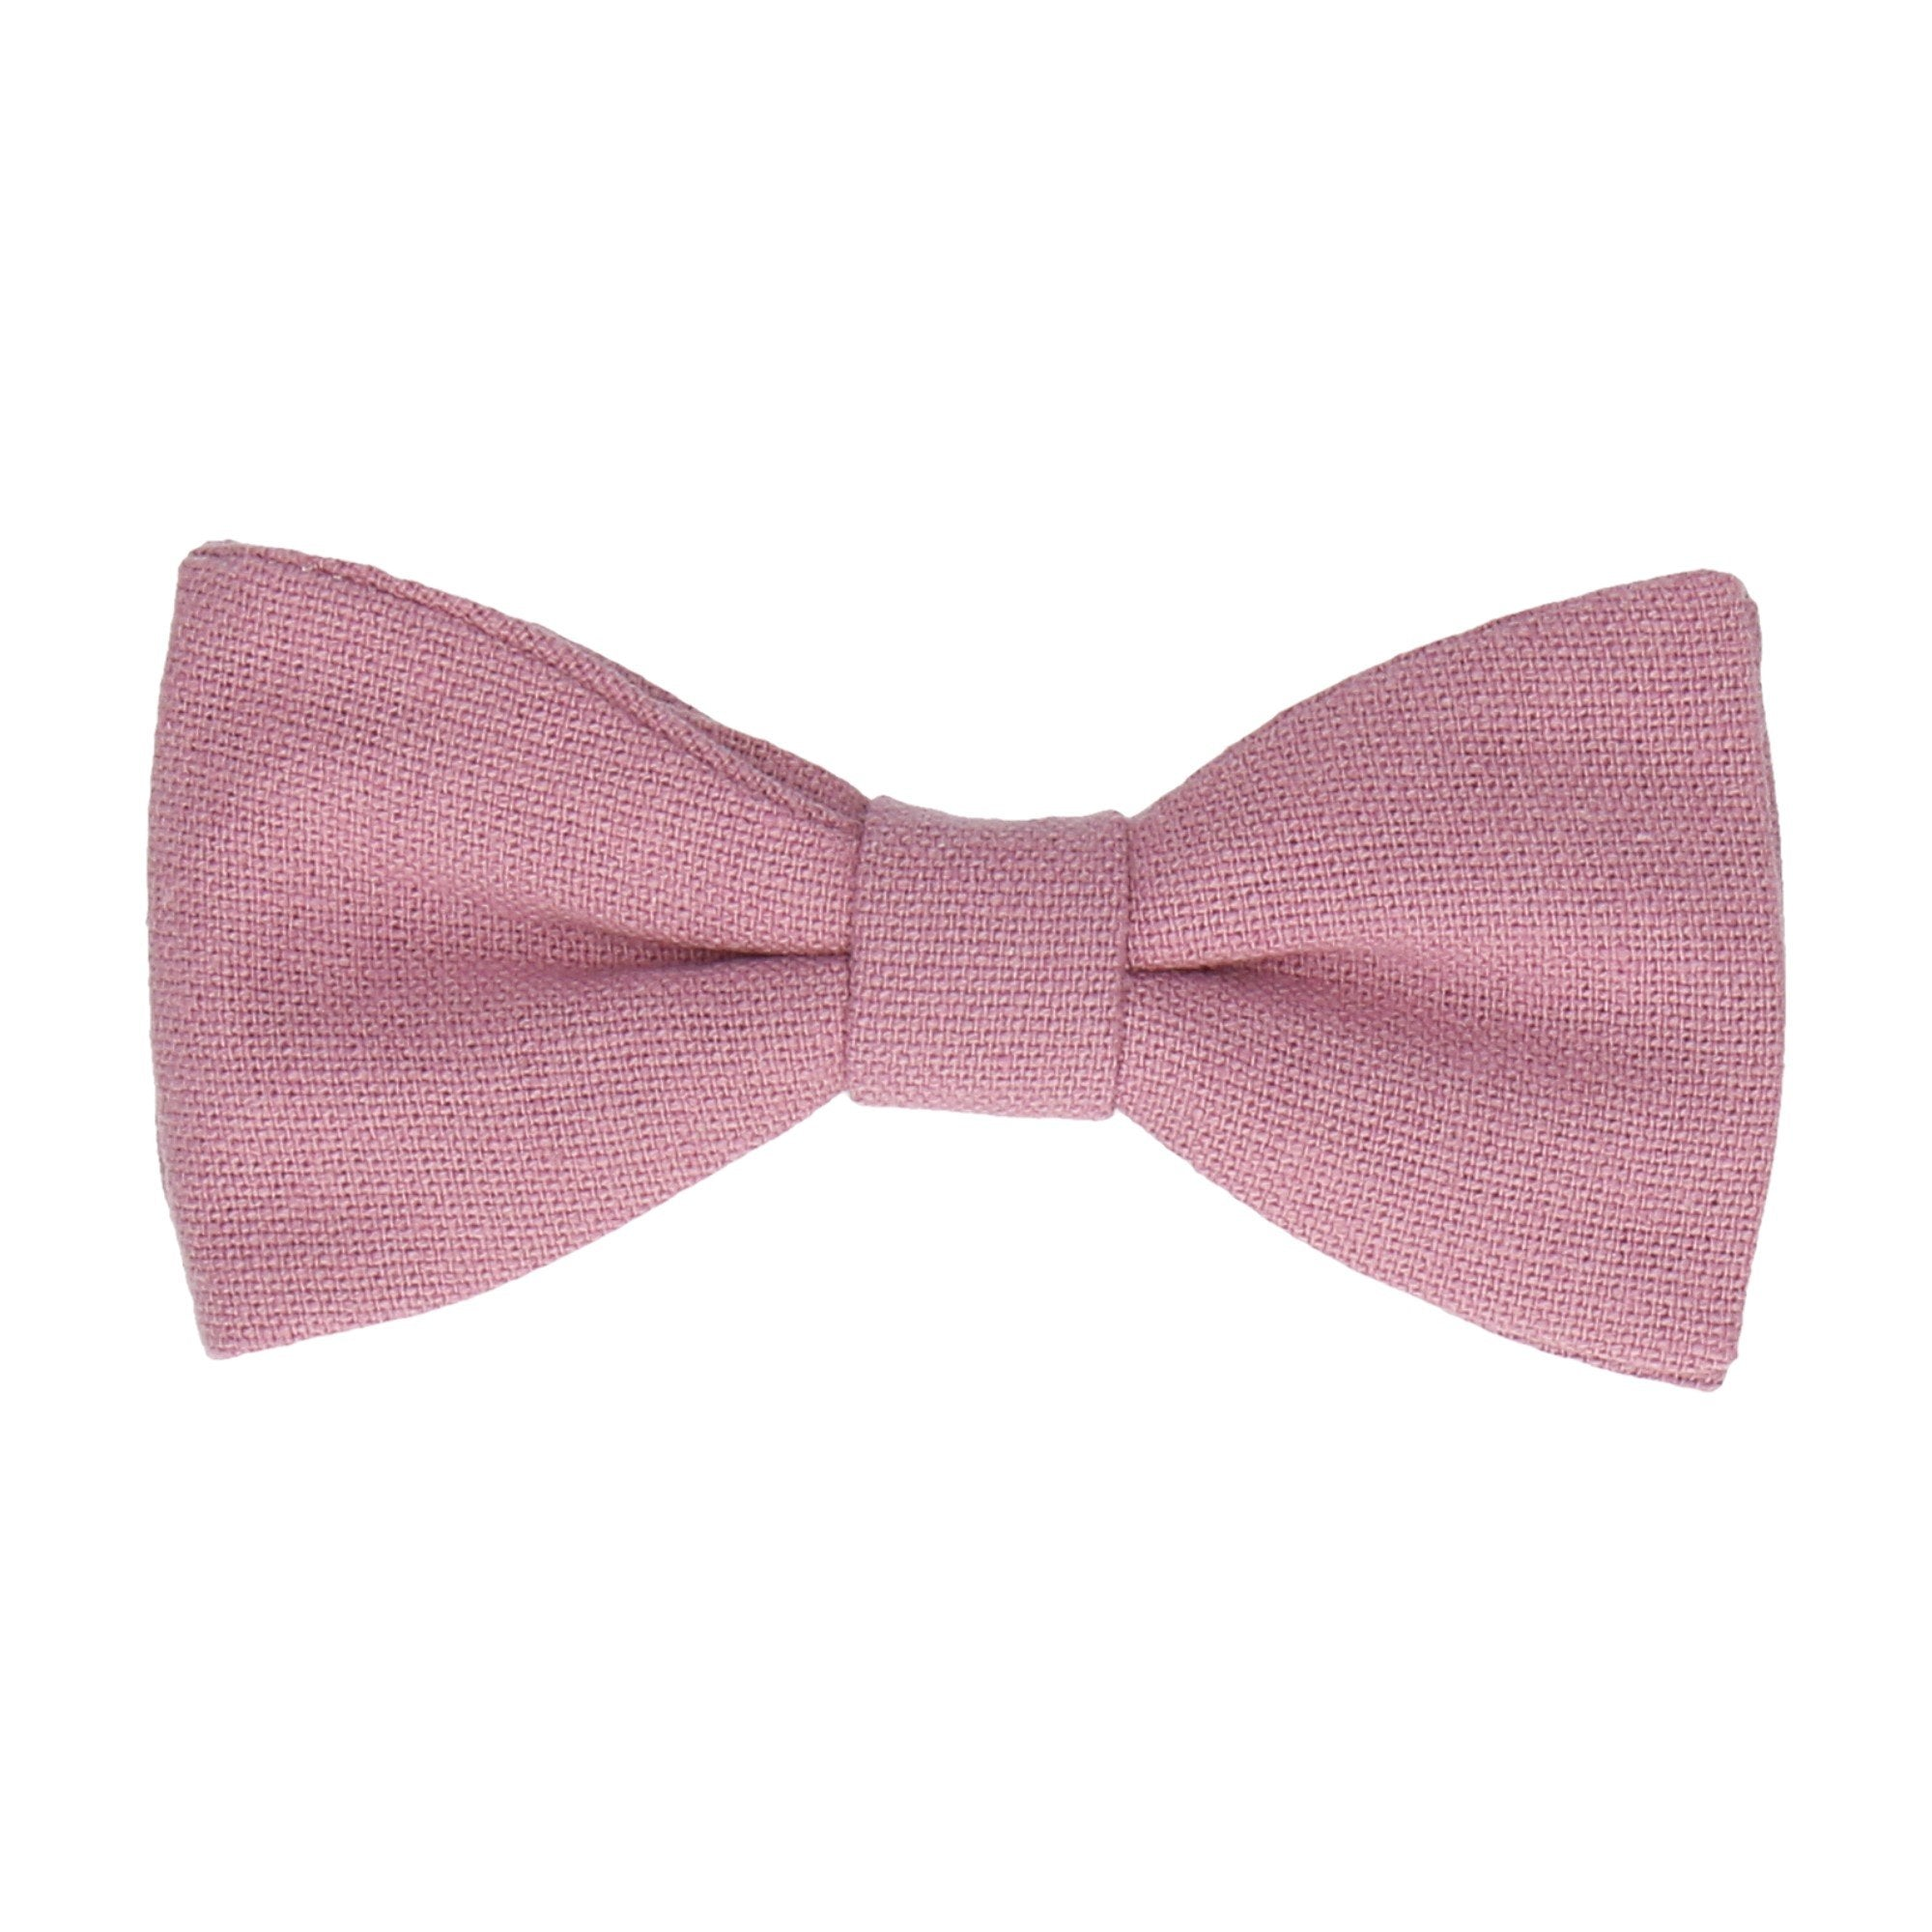 Linen Powder Pink Bow Tie